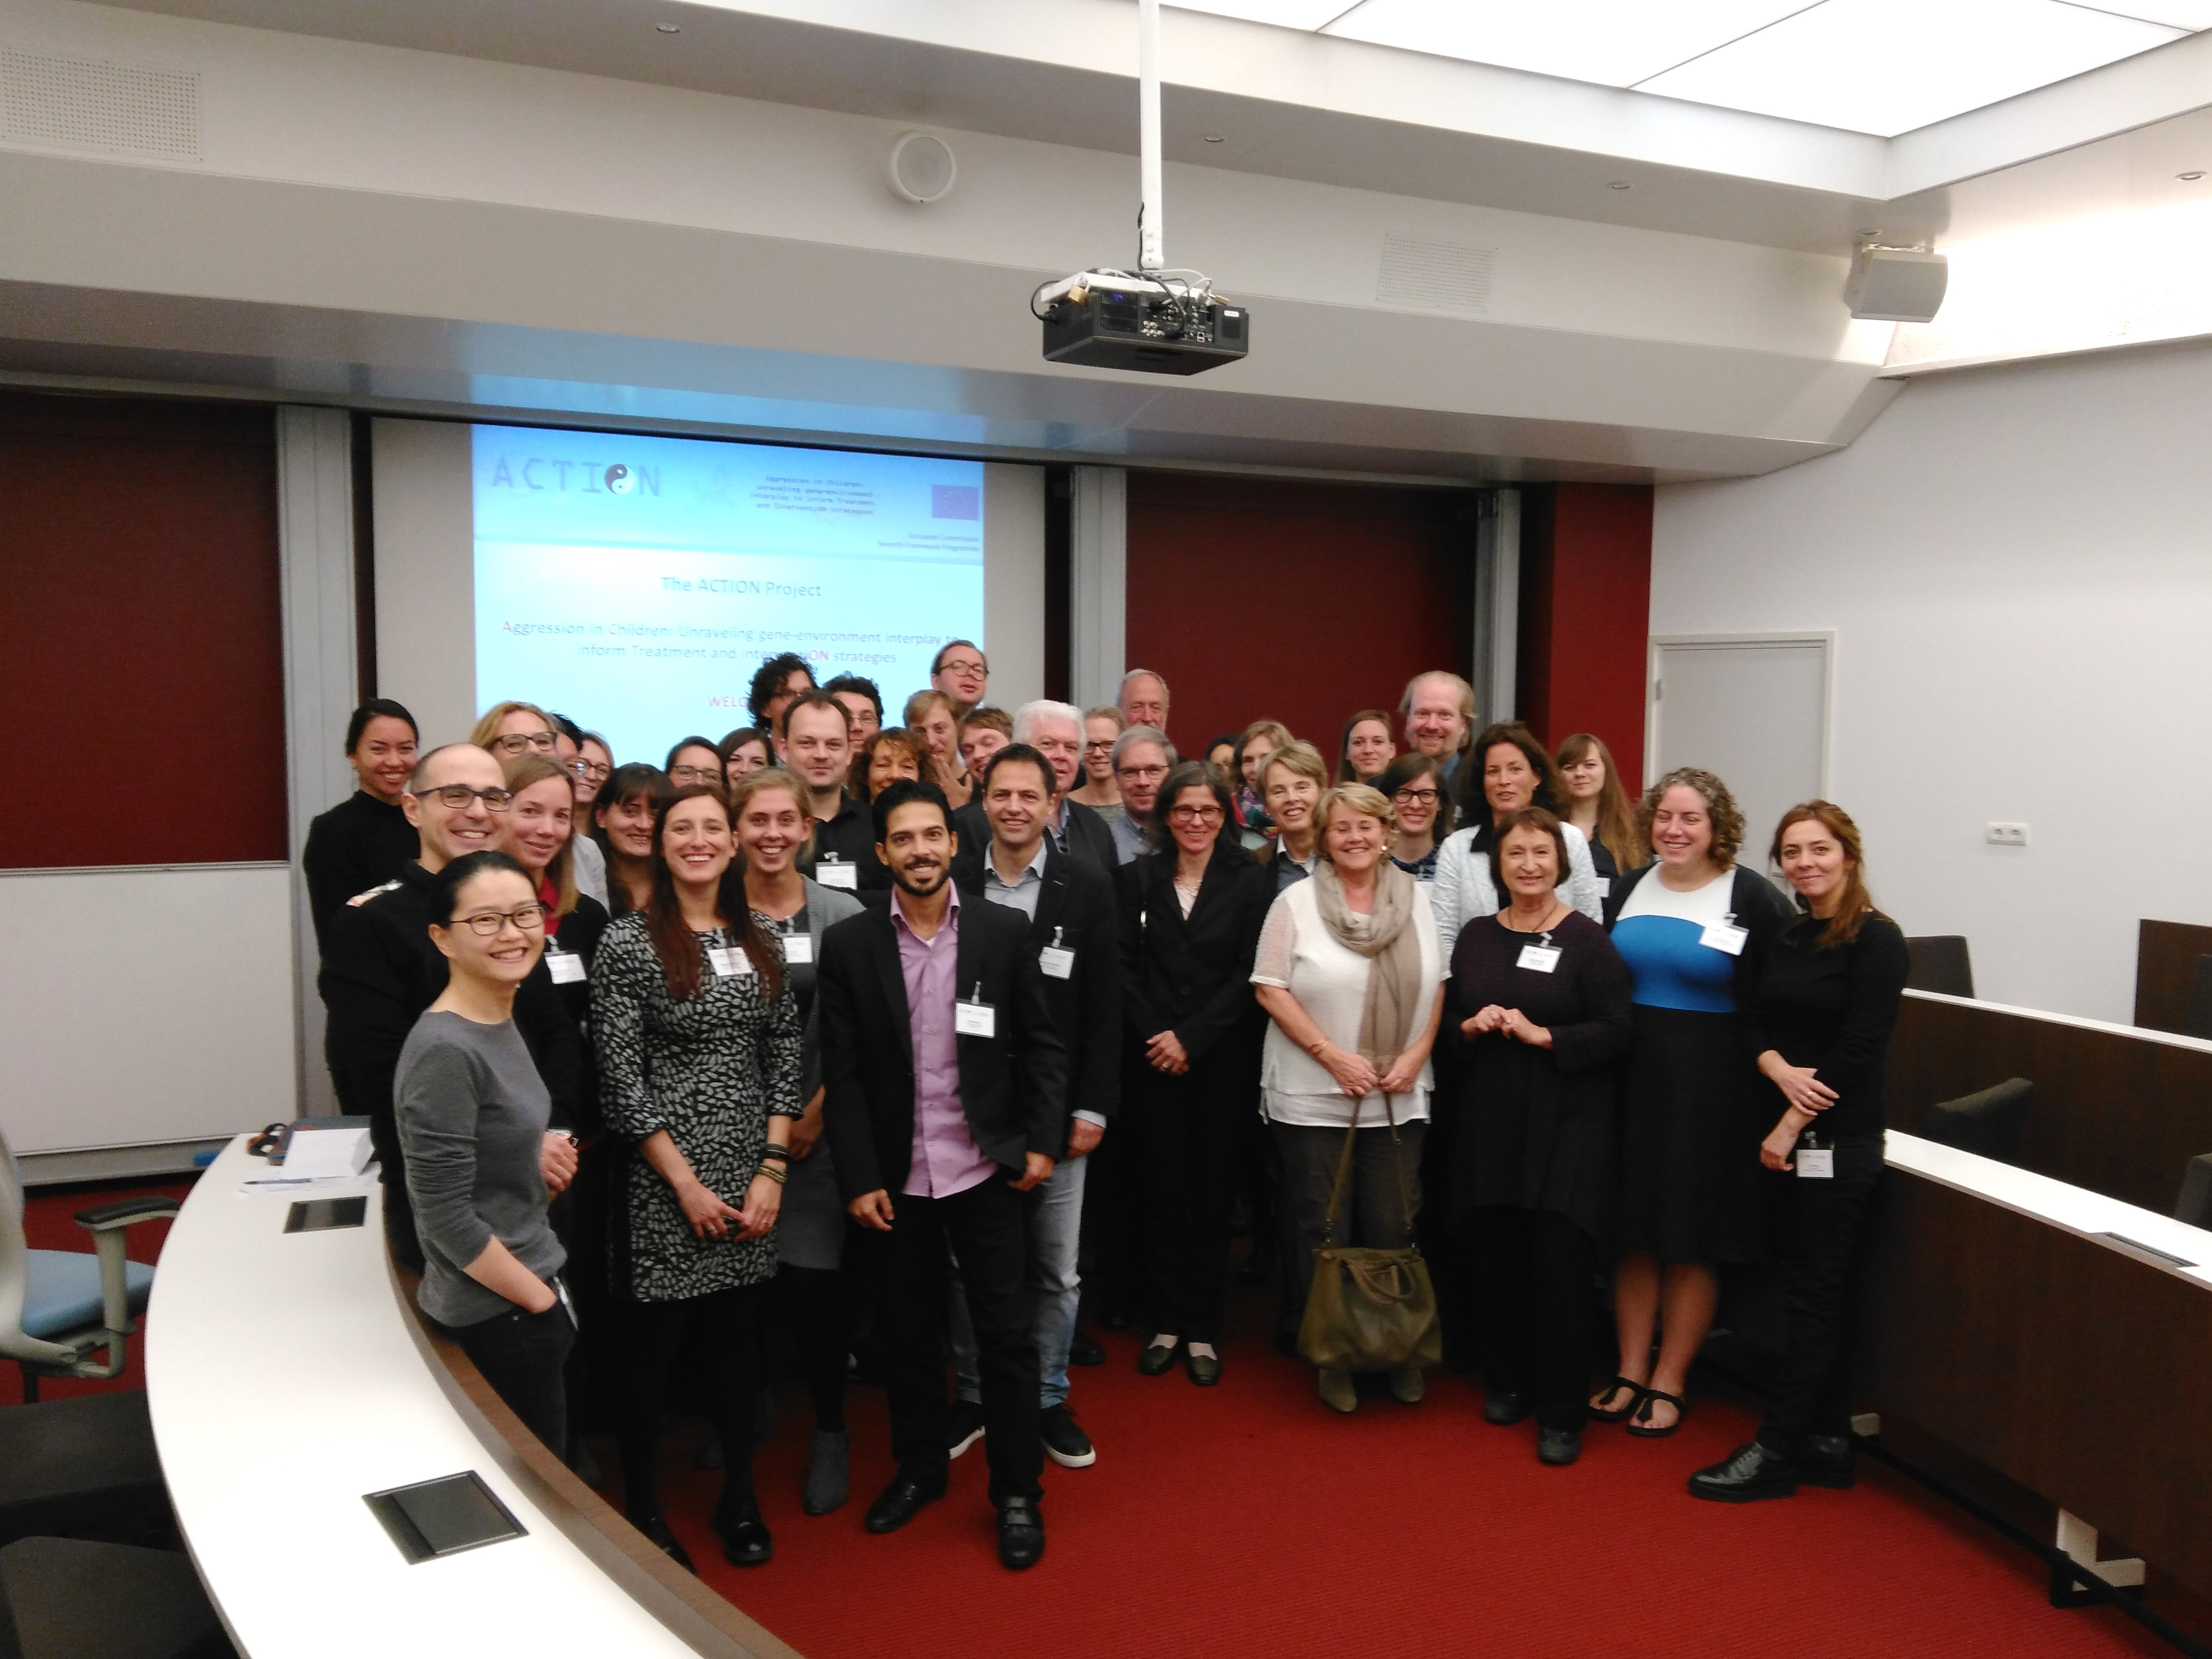 Fourth Plenary Action Meeting And Related Workshop For Junior Researchers Amsterdam Netherlands October 30 31 2017 Action Project